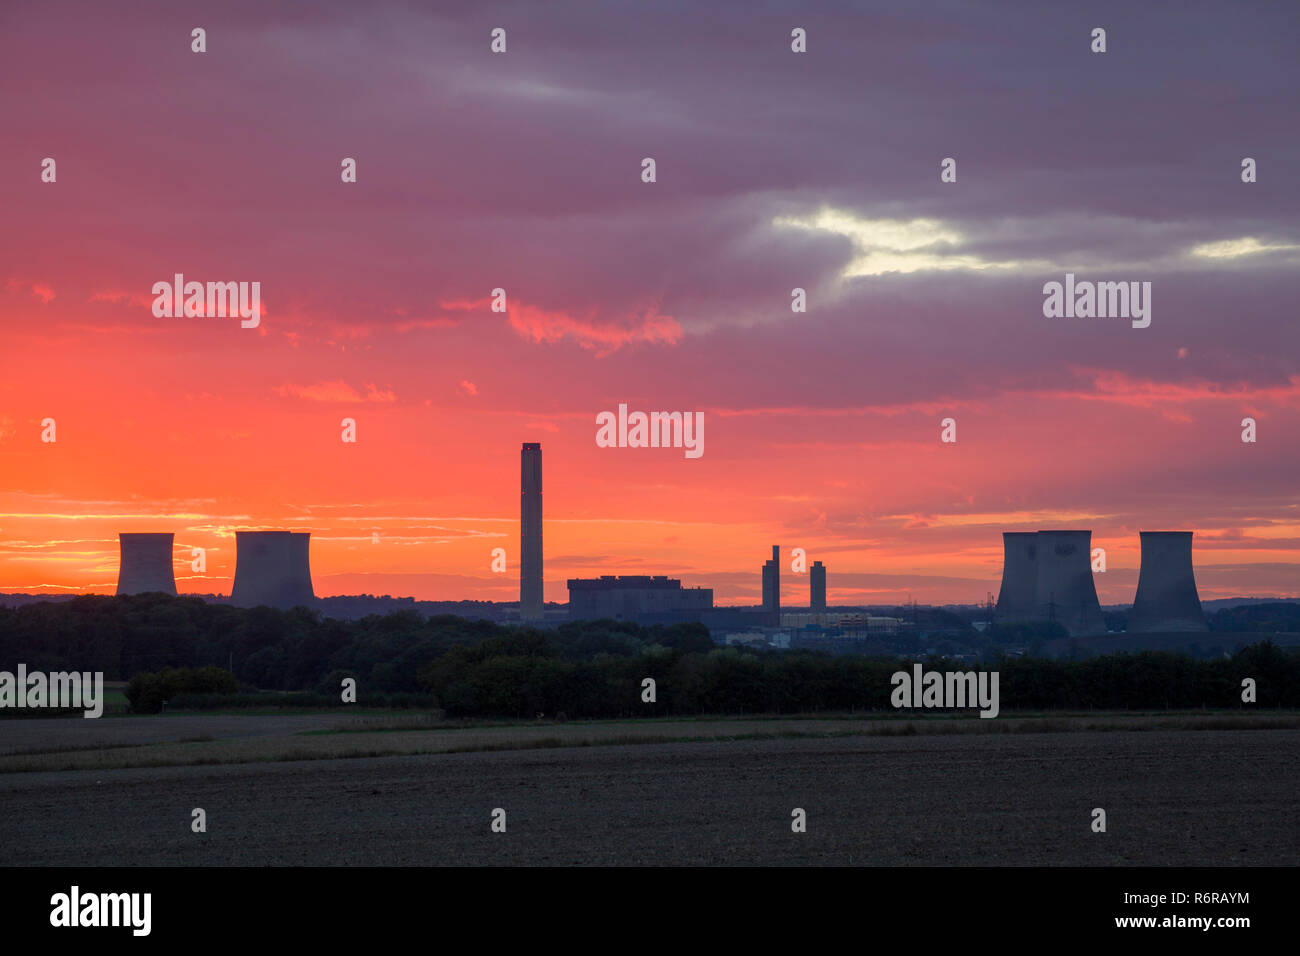 Didcot Power Station at dusk with a red sunset photographed from Wittenham Clumps, before the demolition of the three Southern cooling towers - Stock Image